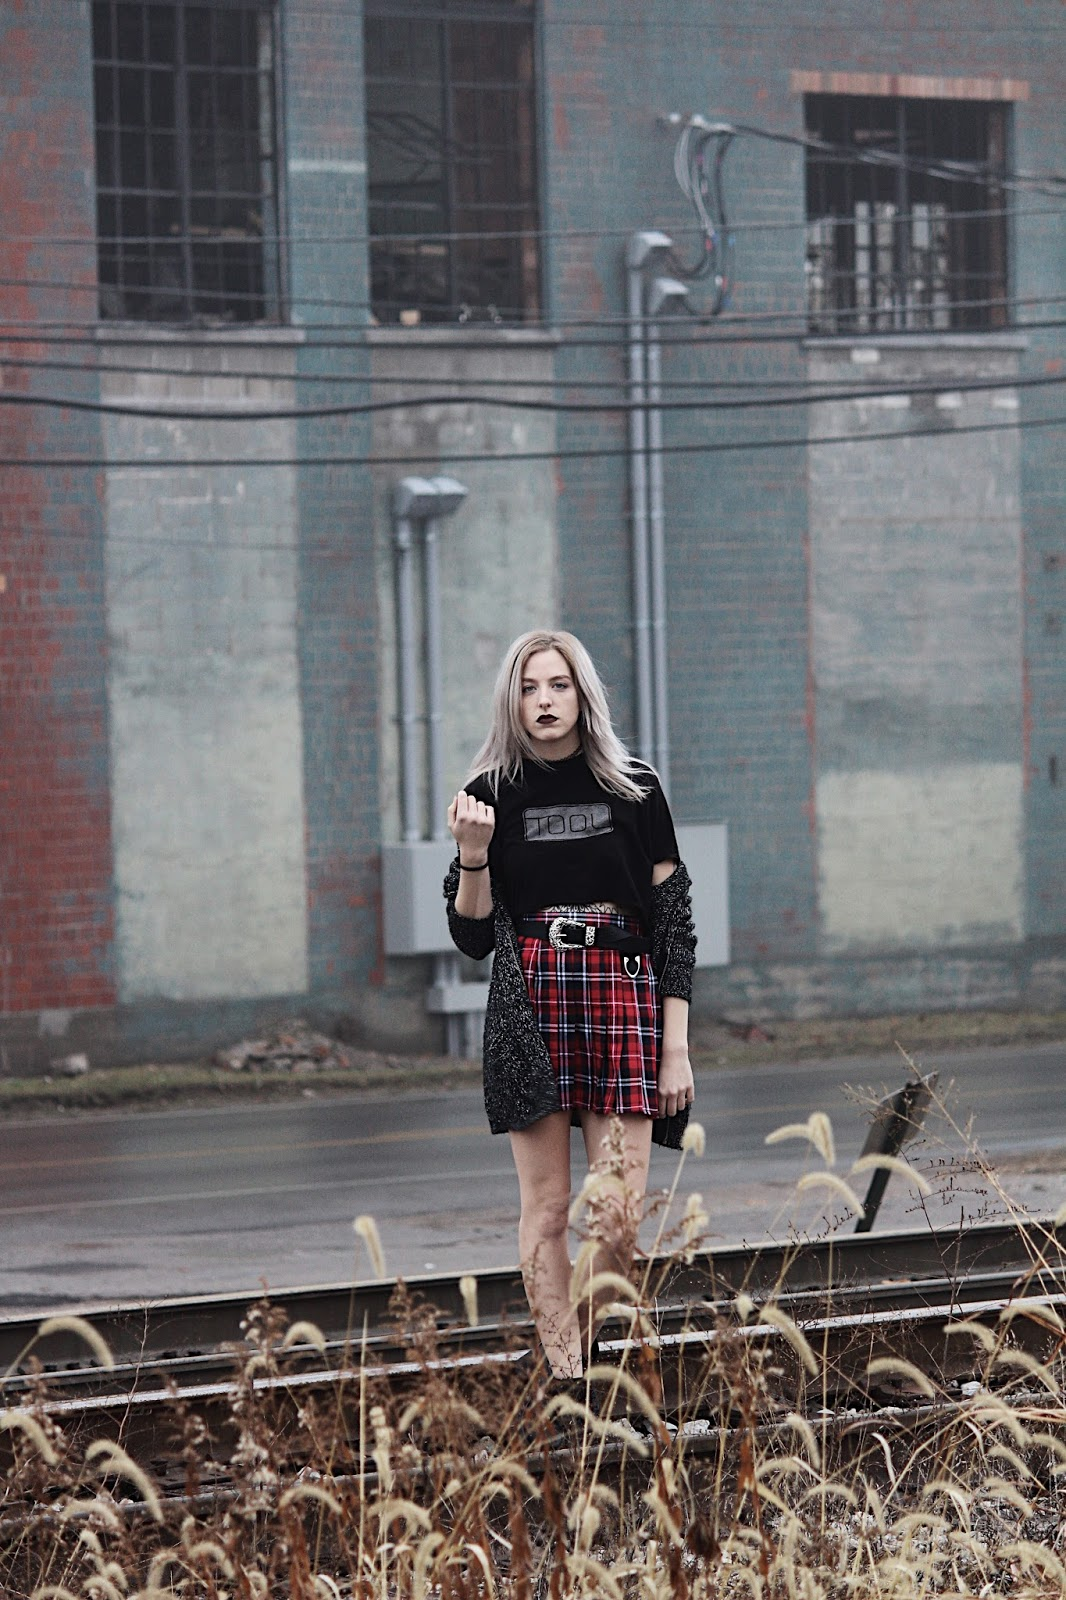 grunge goth plaid skirt and band shirt